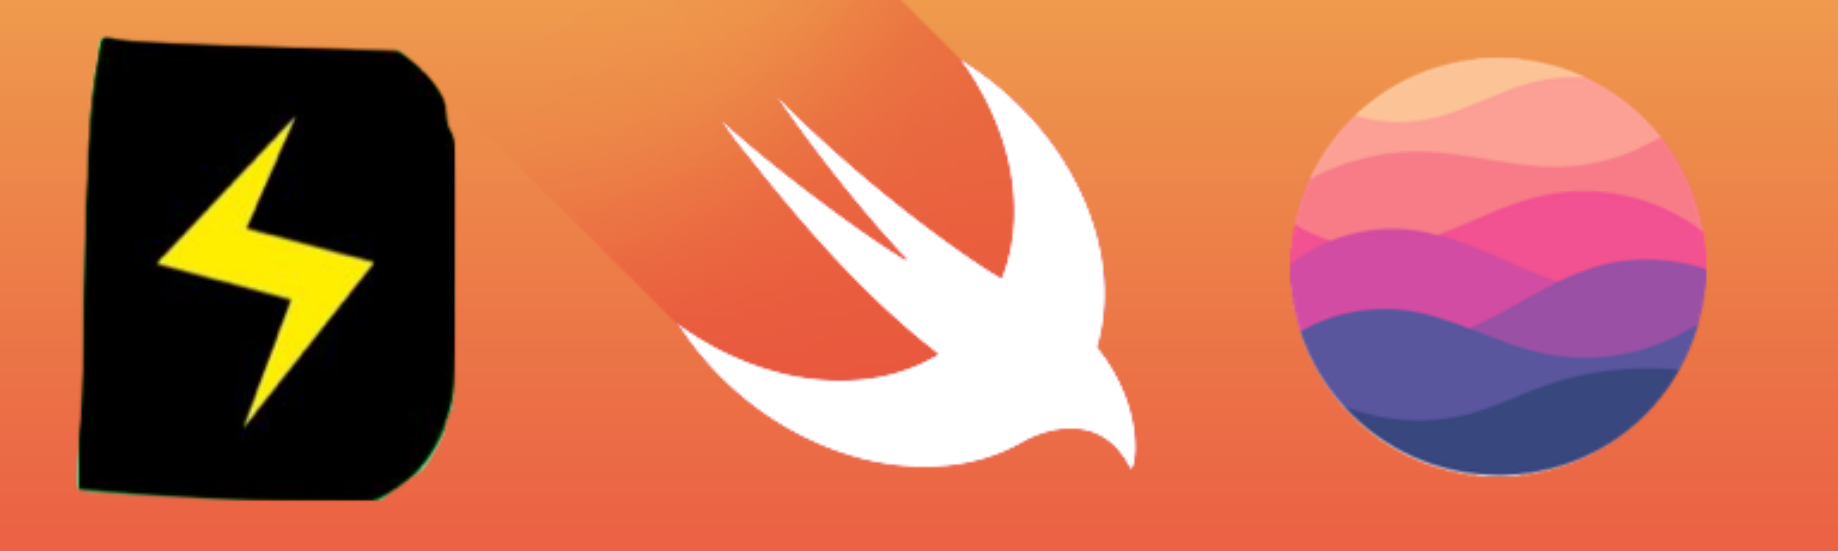 Using SwiftLint and Danger for Swift Best Practices